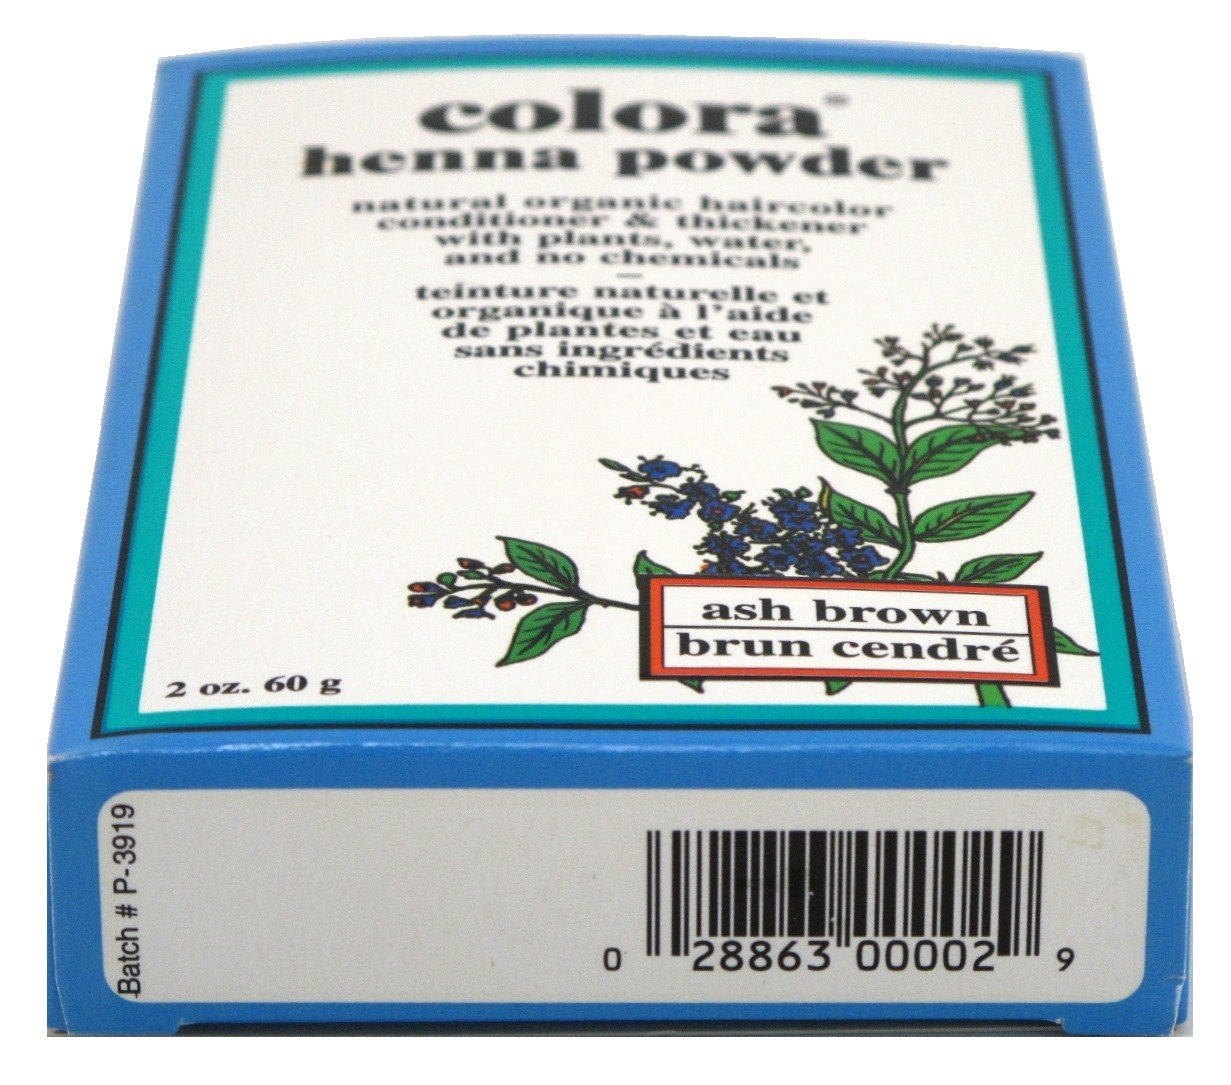 Colora Henna Powder Hair Color Ash Brown 2oz (3 Pack) by Colora Henna (Image #1)